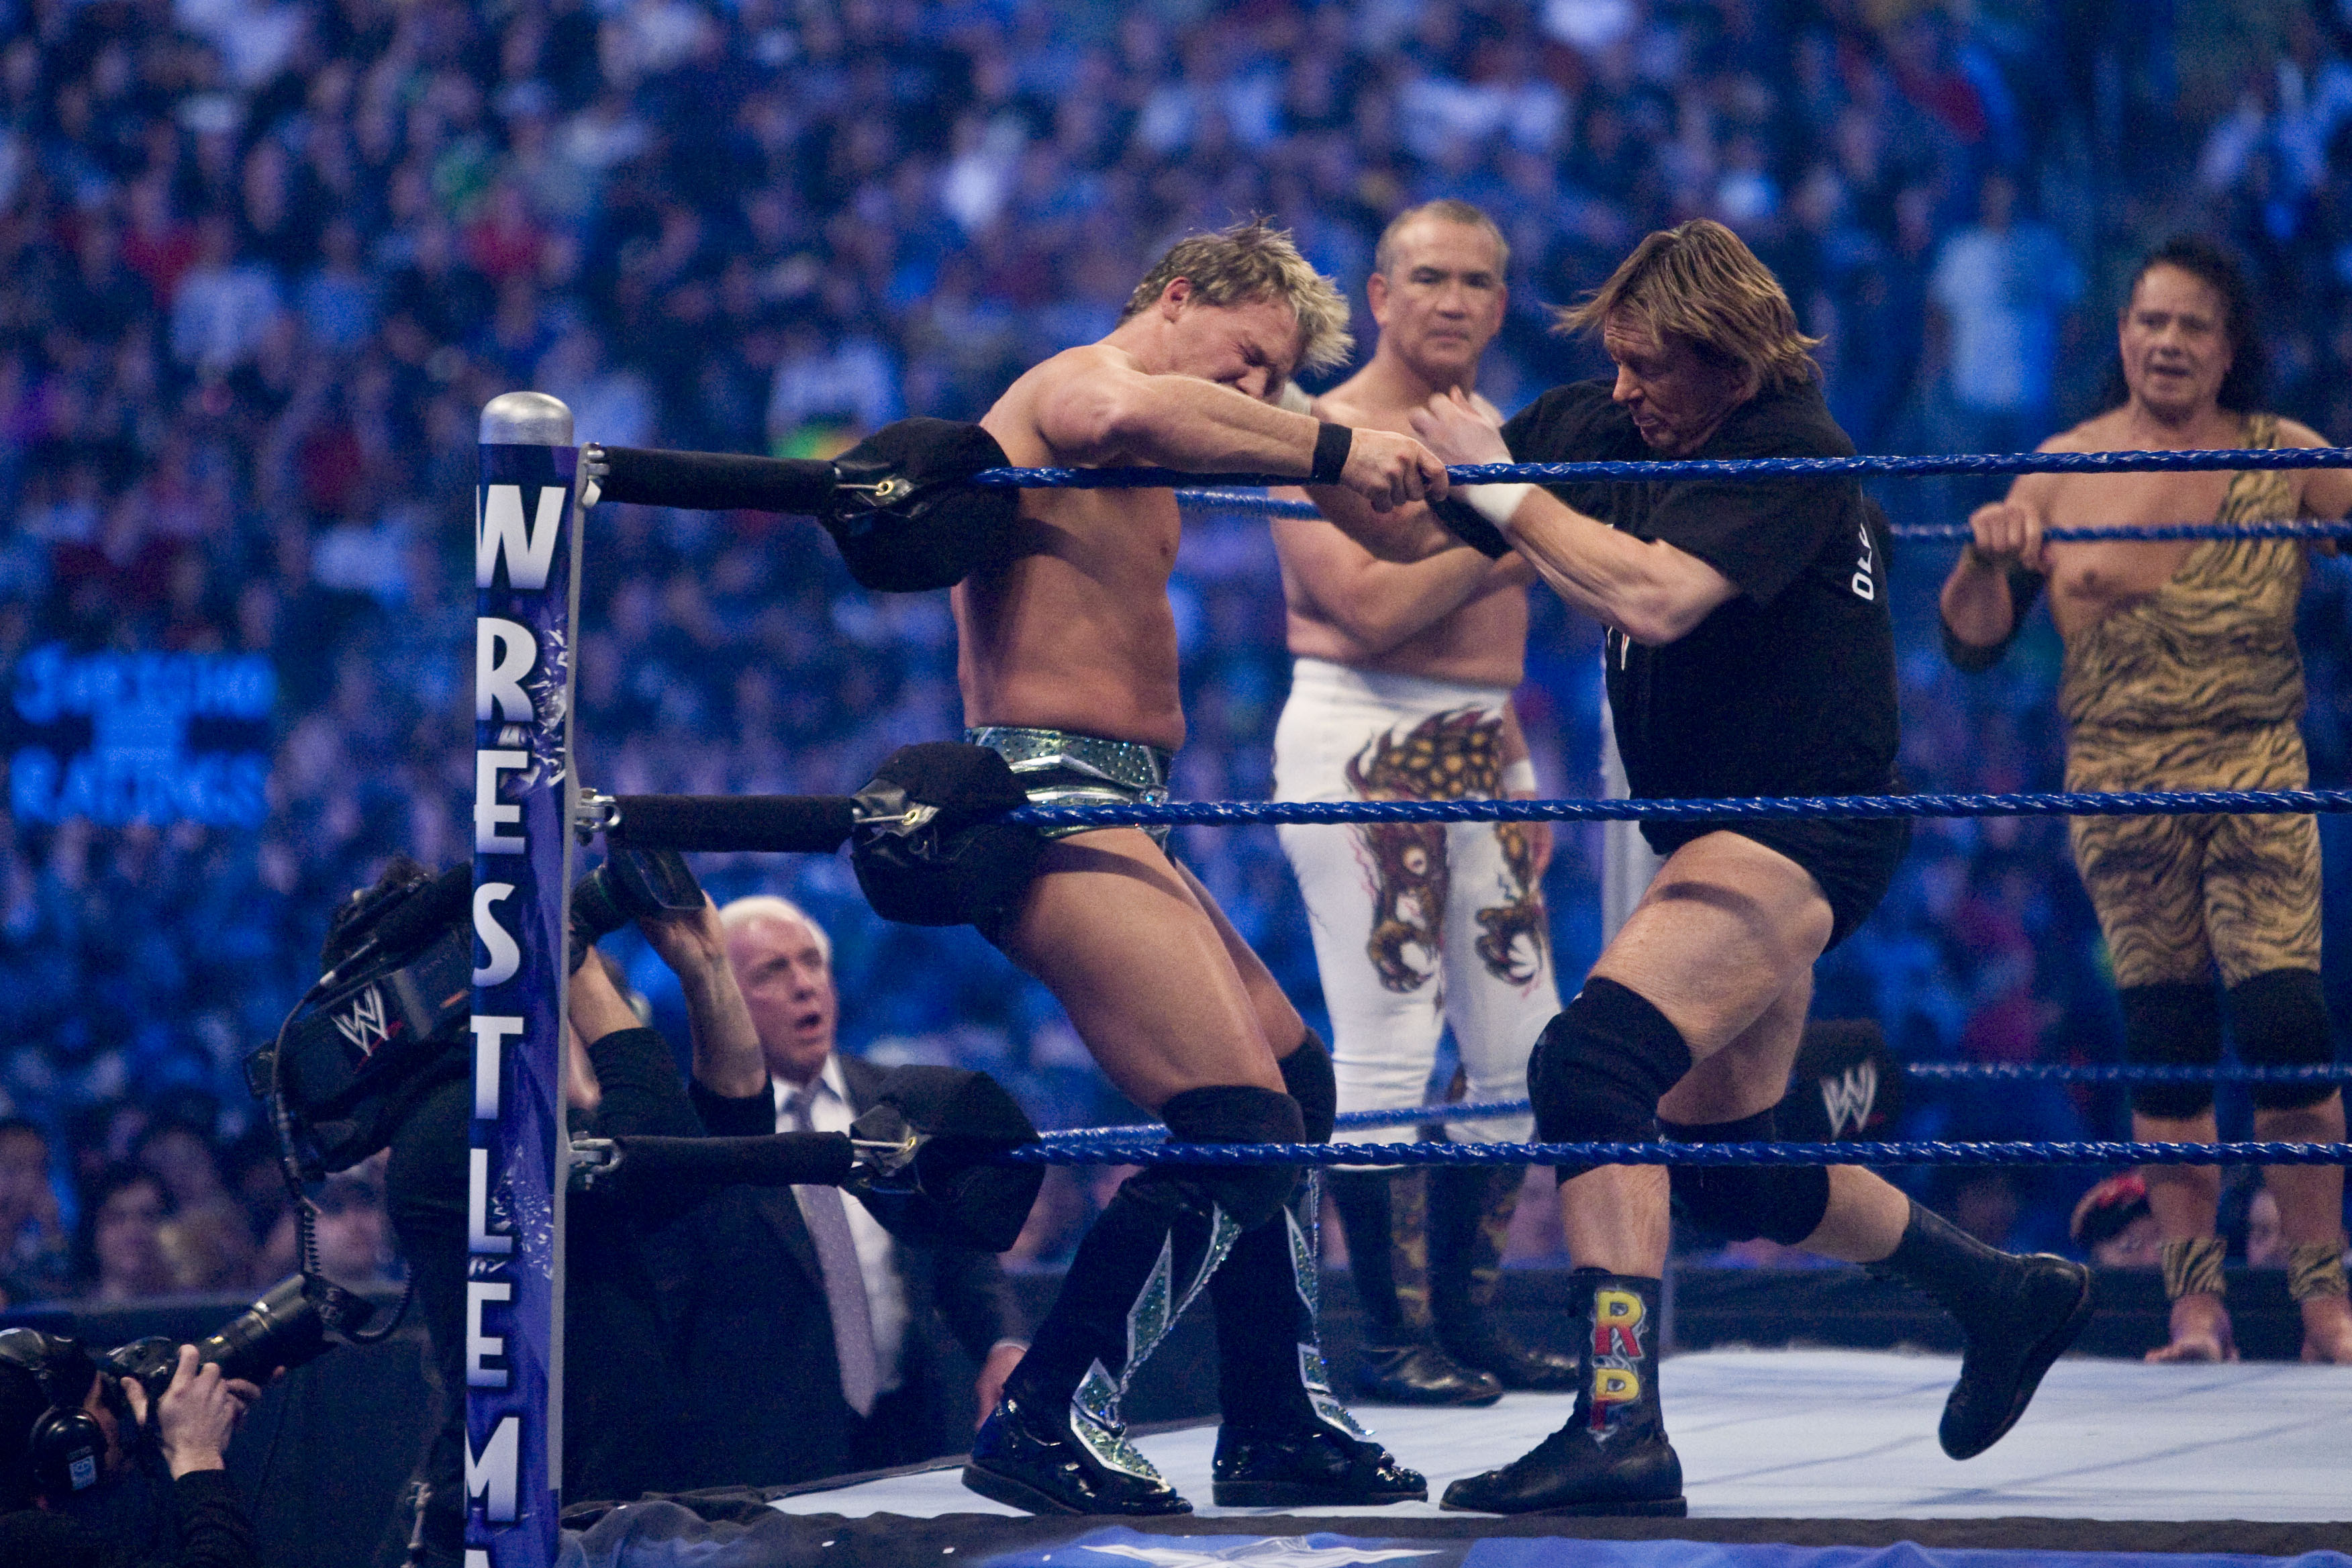 HOUSTON, TX - APRIL 5:  (L-R) Former professional wrestlers Ric Flair (seen outside the ring) looks on as WWE Superstar Chris Jericho gets pummeled on the ropes by 'Rowdy' Roddy Piper. Ricky 'The Dragon' Steamboat and Jimmy 'Superfly' Snuka look on during